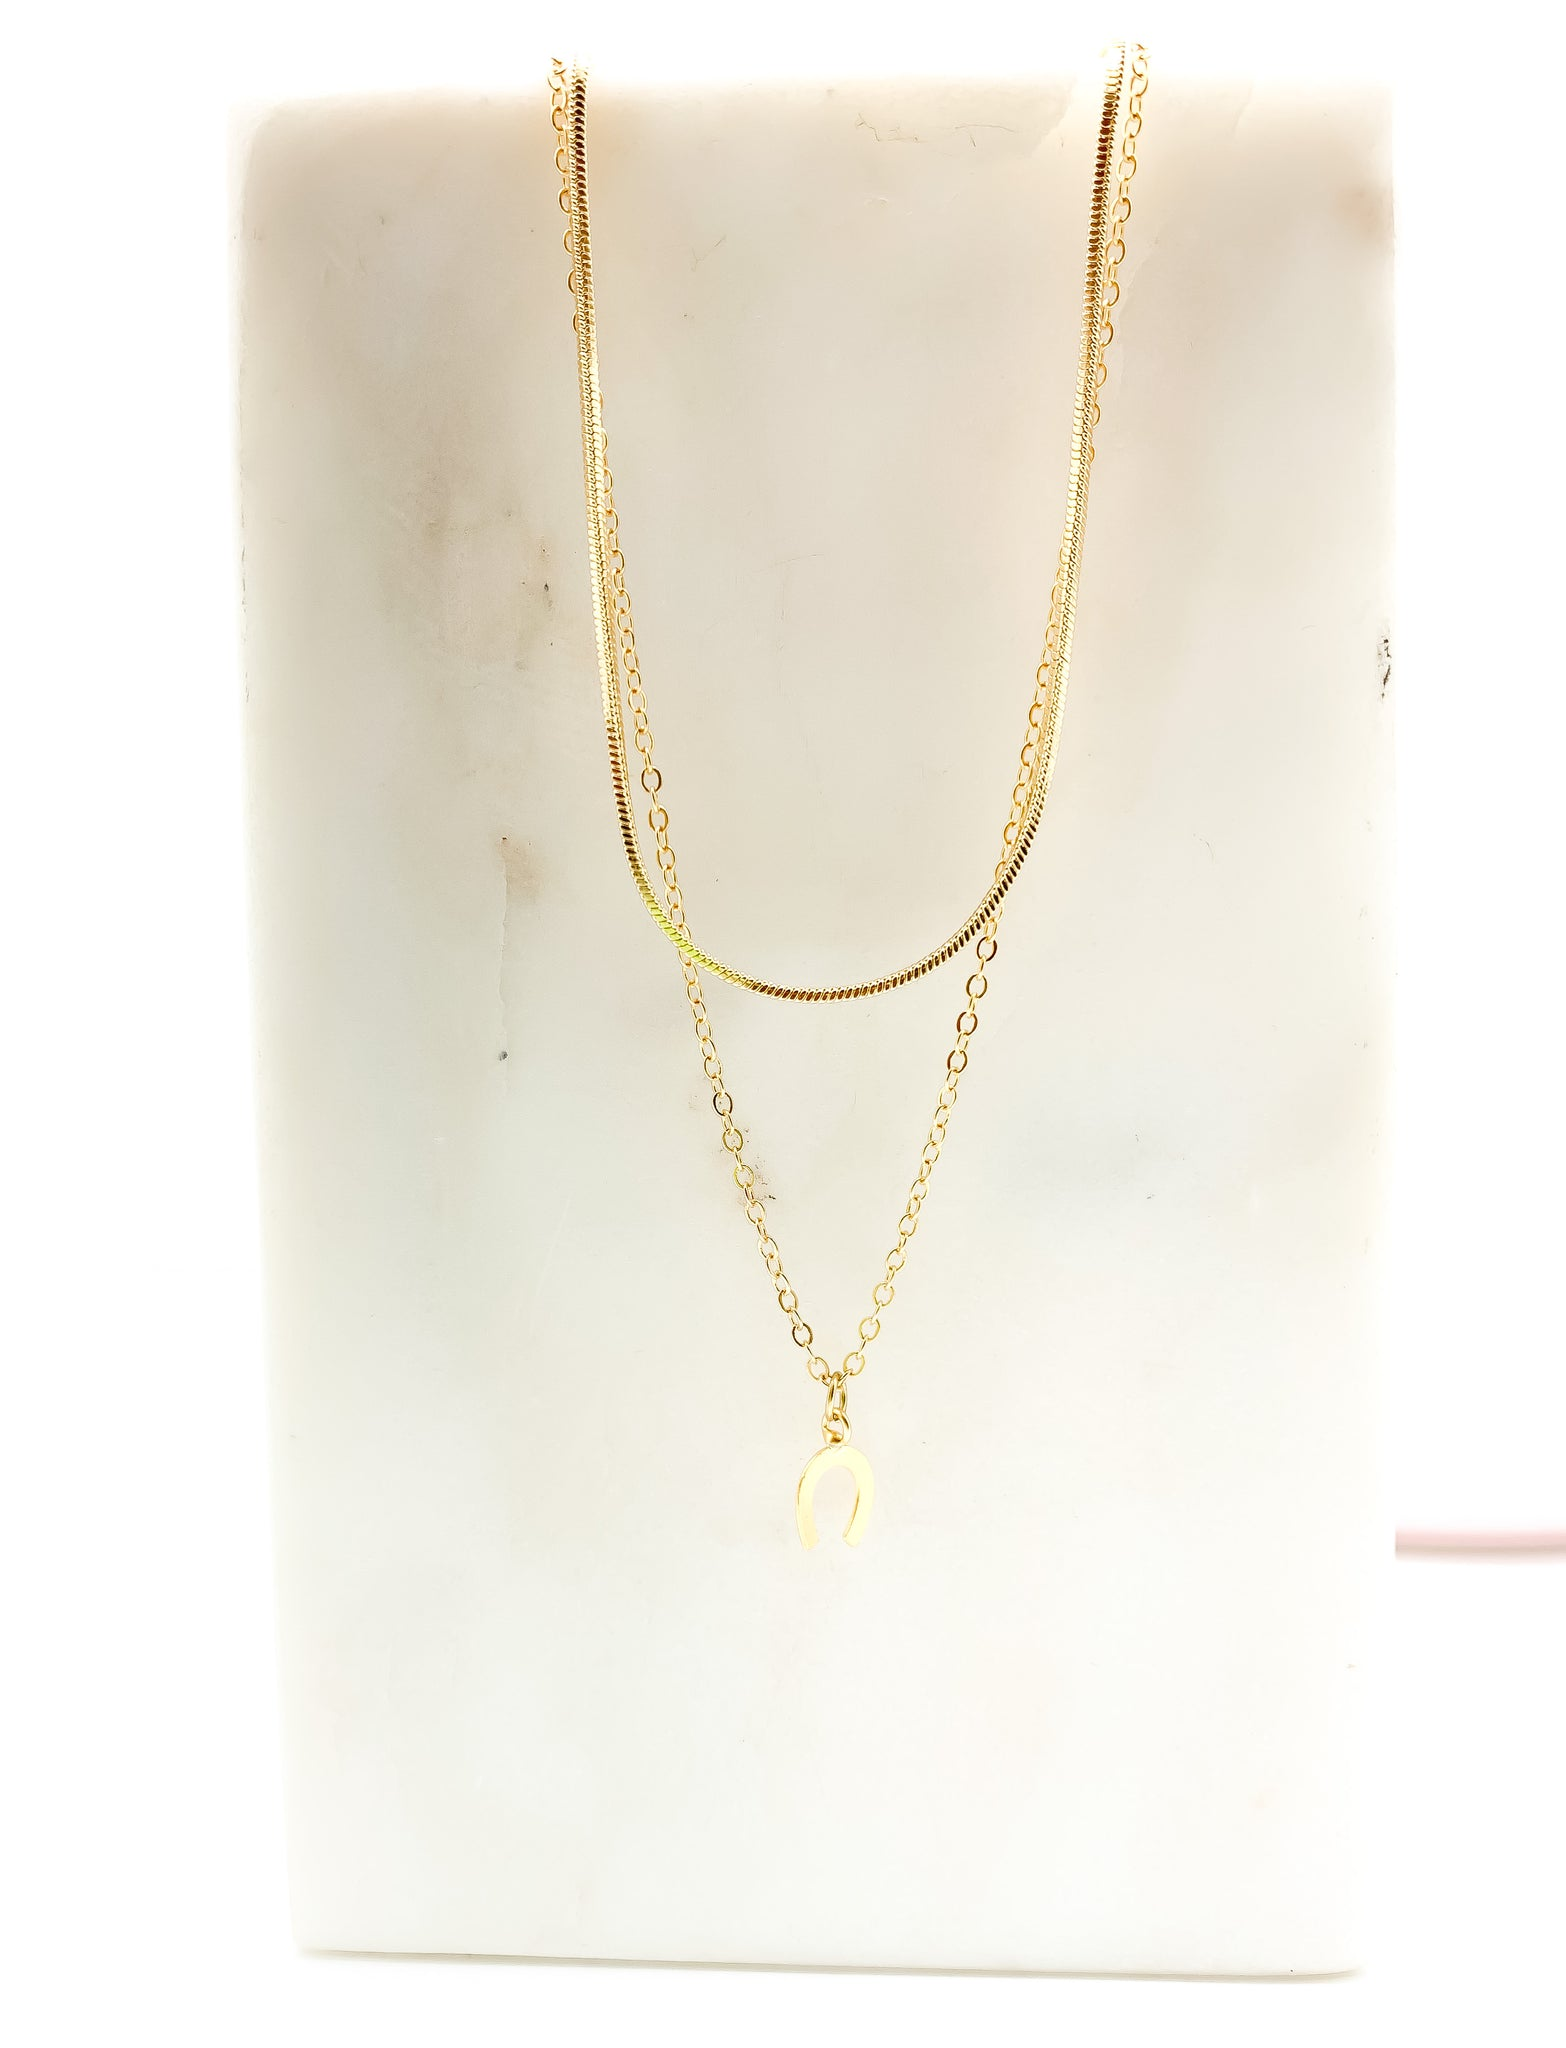 Basic Layers, Layered Necklaces